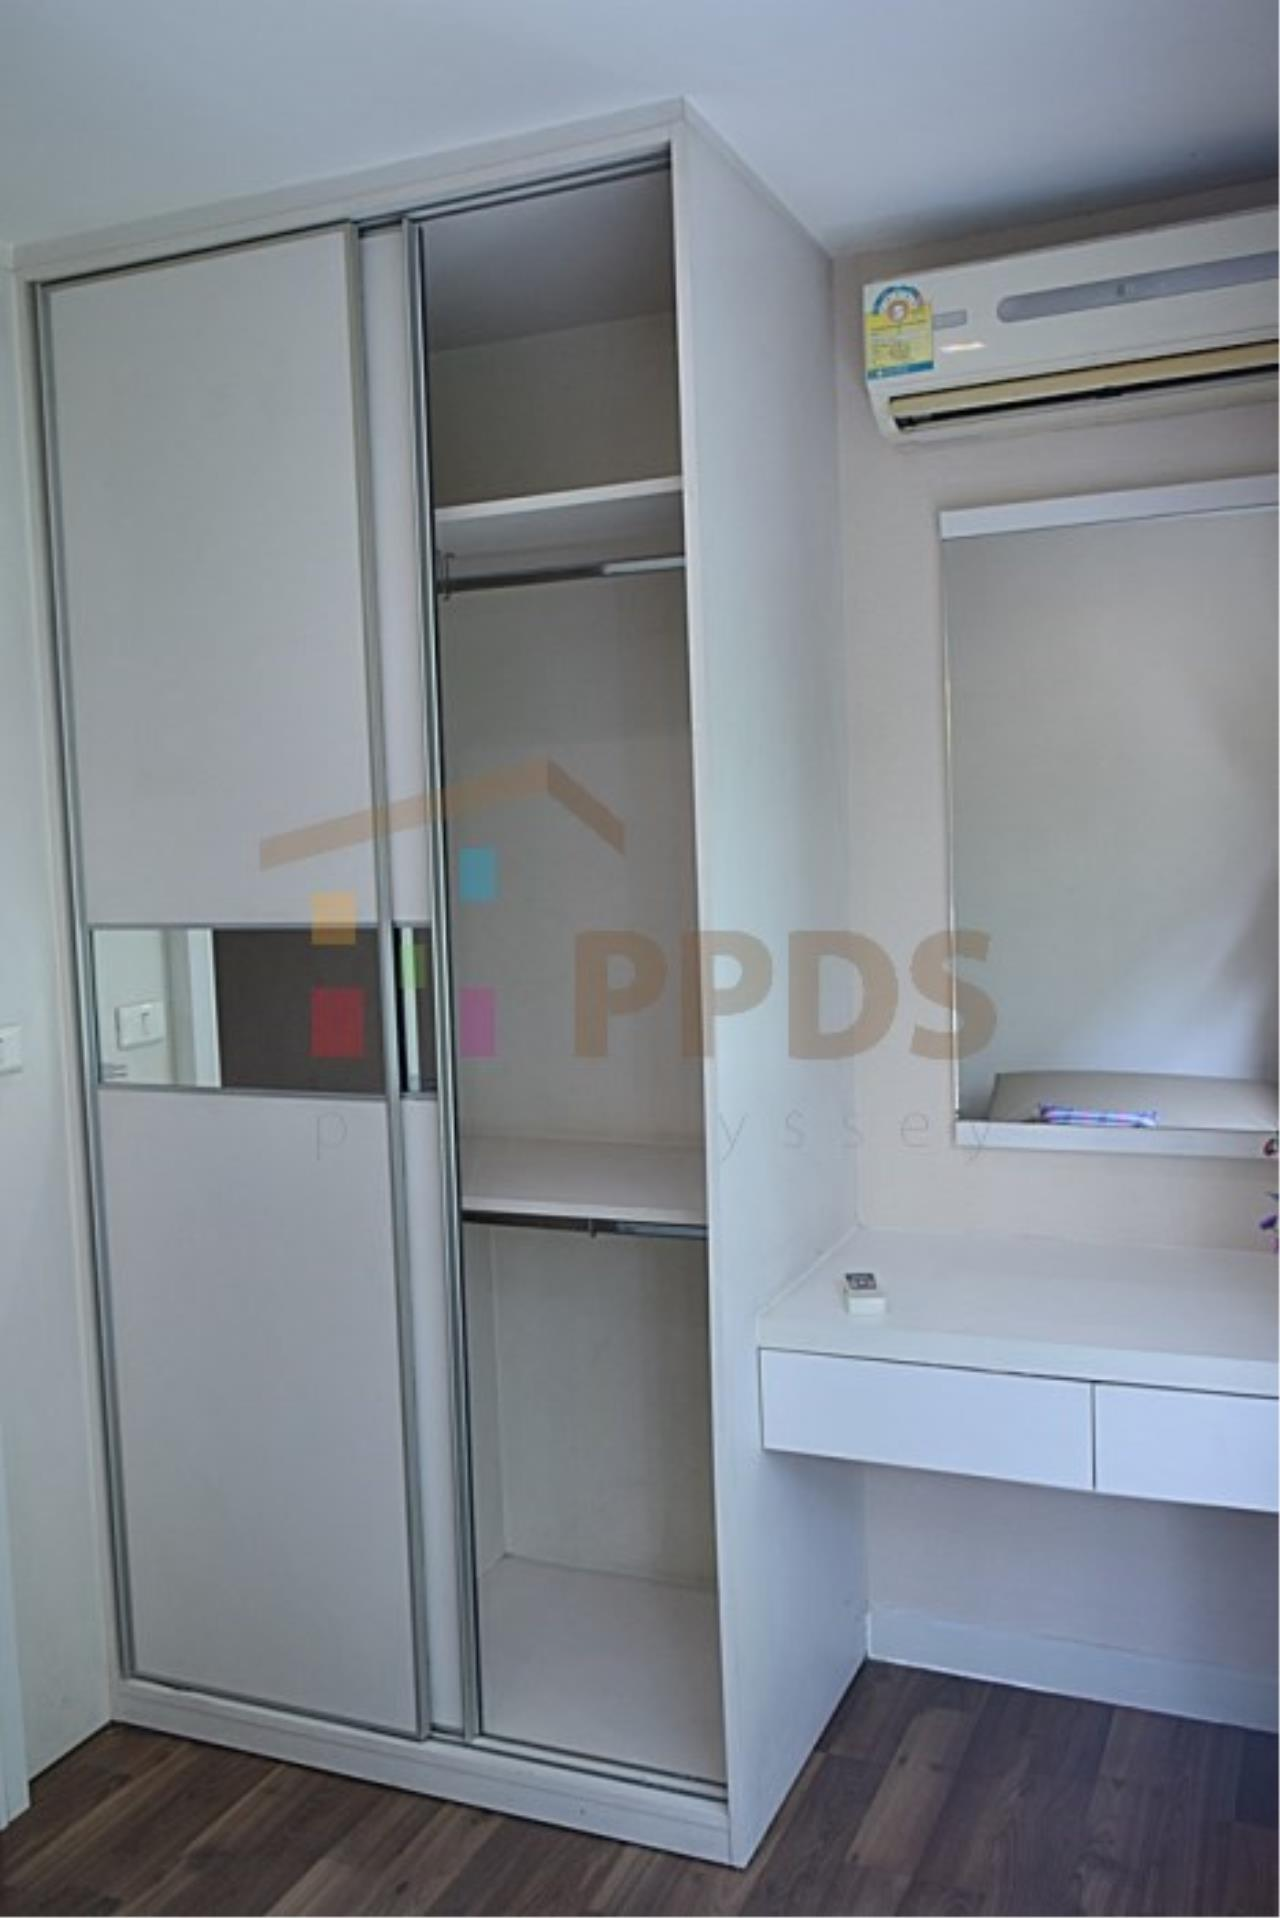 Propodyssey Agency's 2 bedrooms for rent at Onnut walking distance to BTS 14